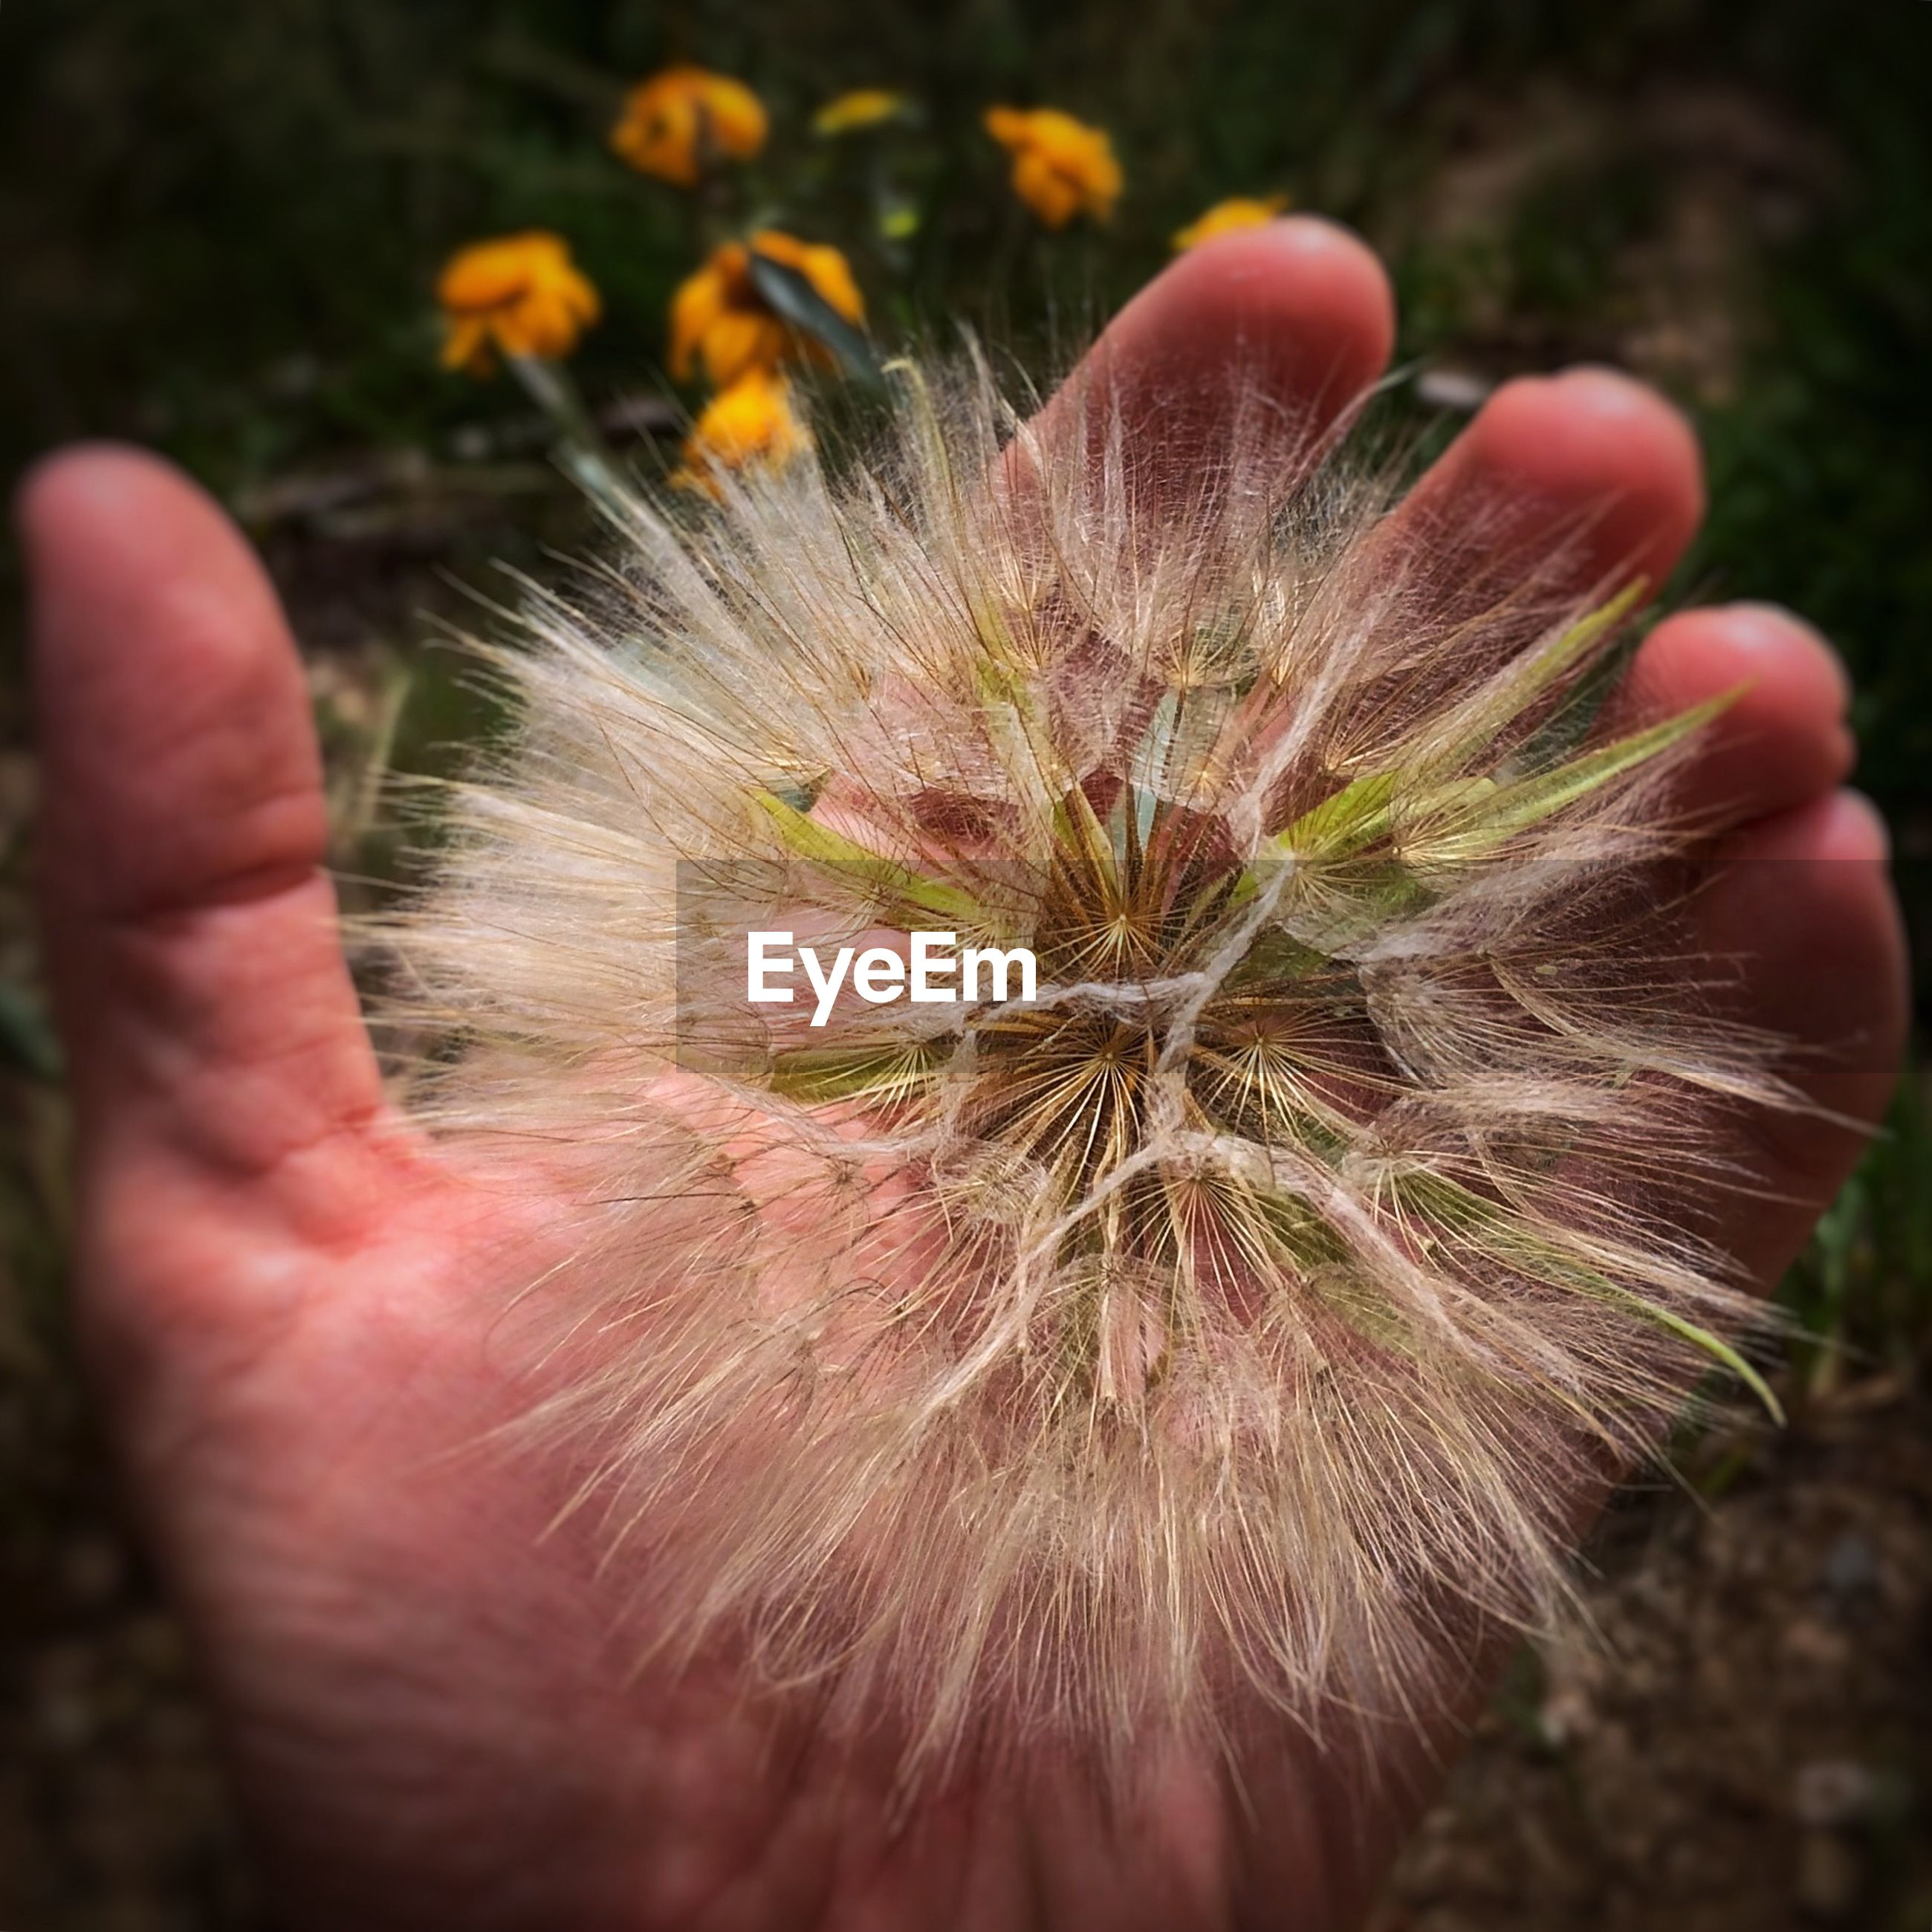 Cropped image of hand holding wildflower